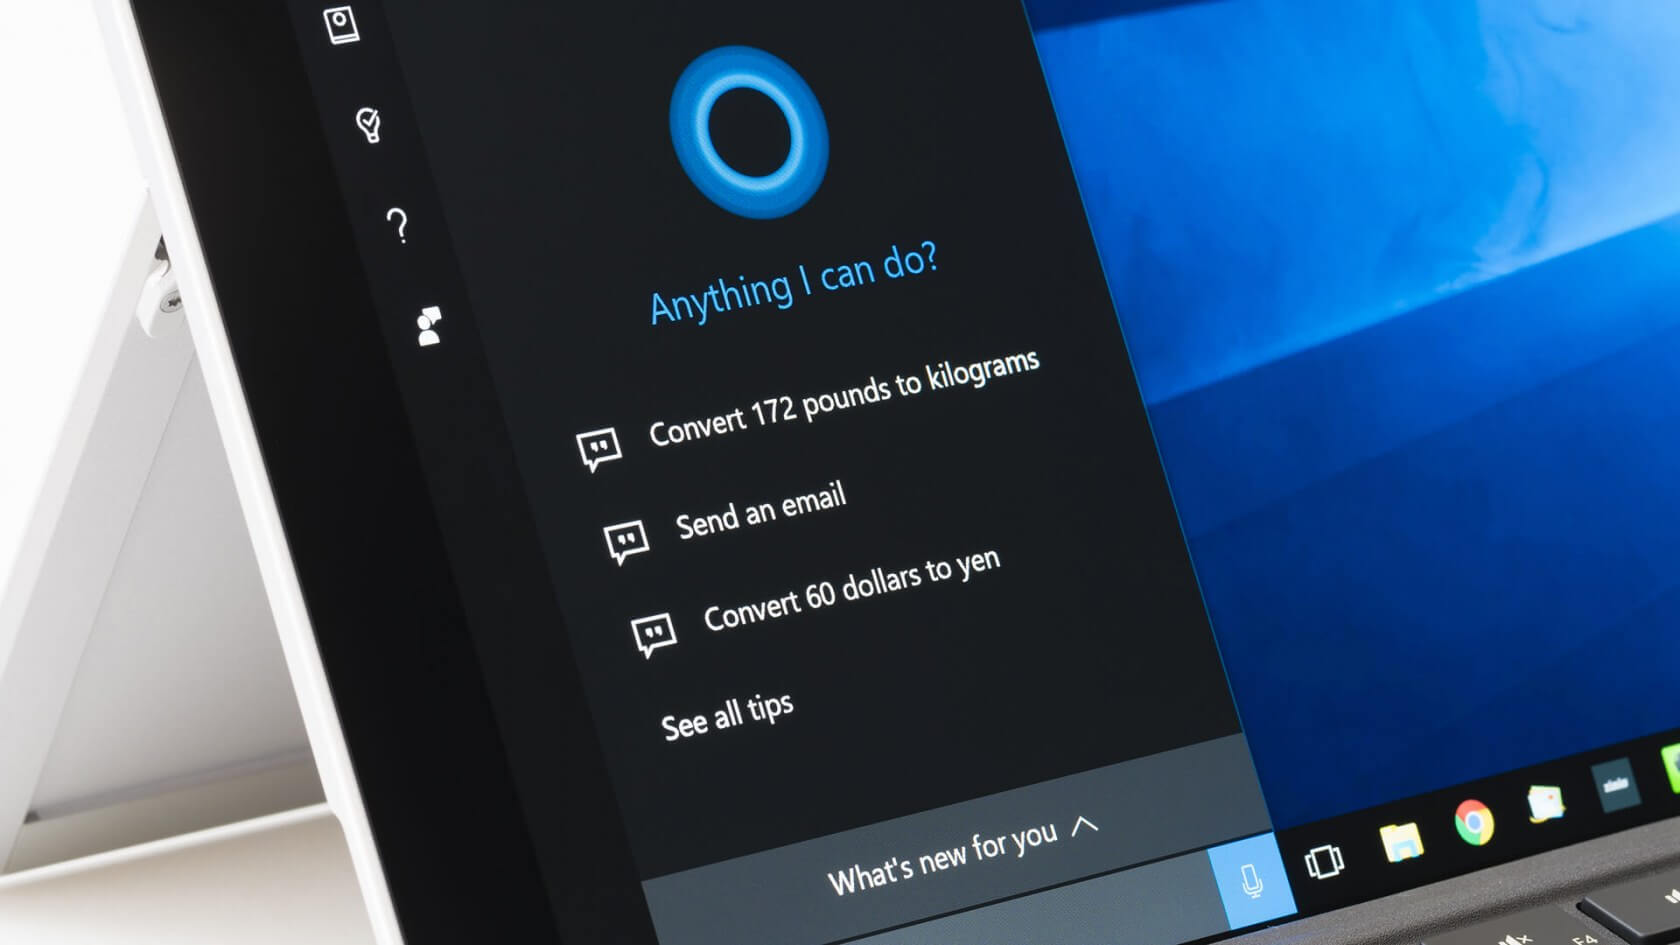 Microsoft will continue to let humans transcribe Skype Translations and Cortana conversations